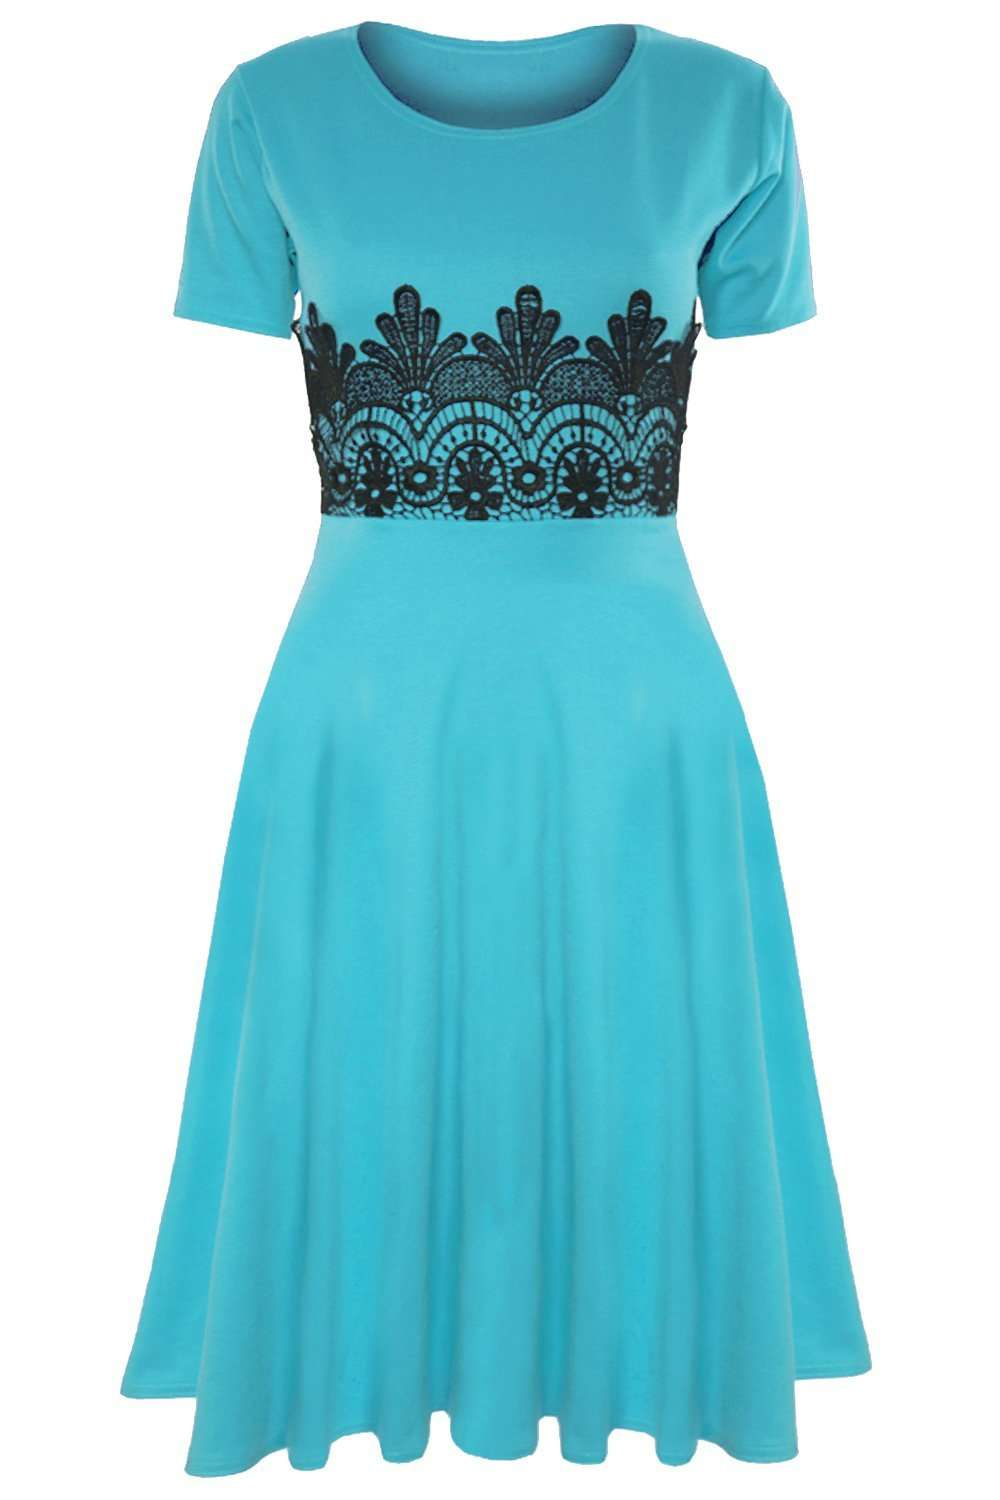 Amarah Cap Sleeve Lace Insert Midi Skater Dress - bejealous-com